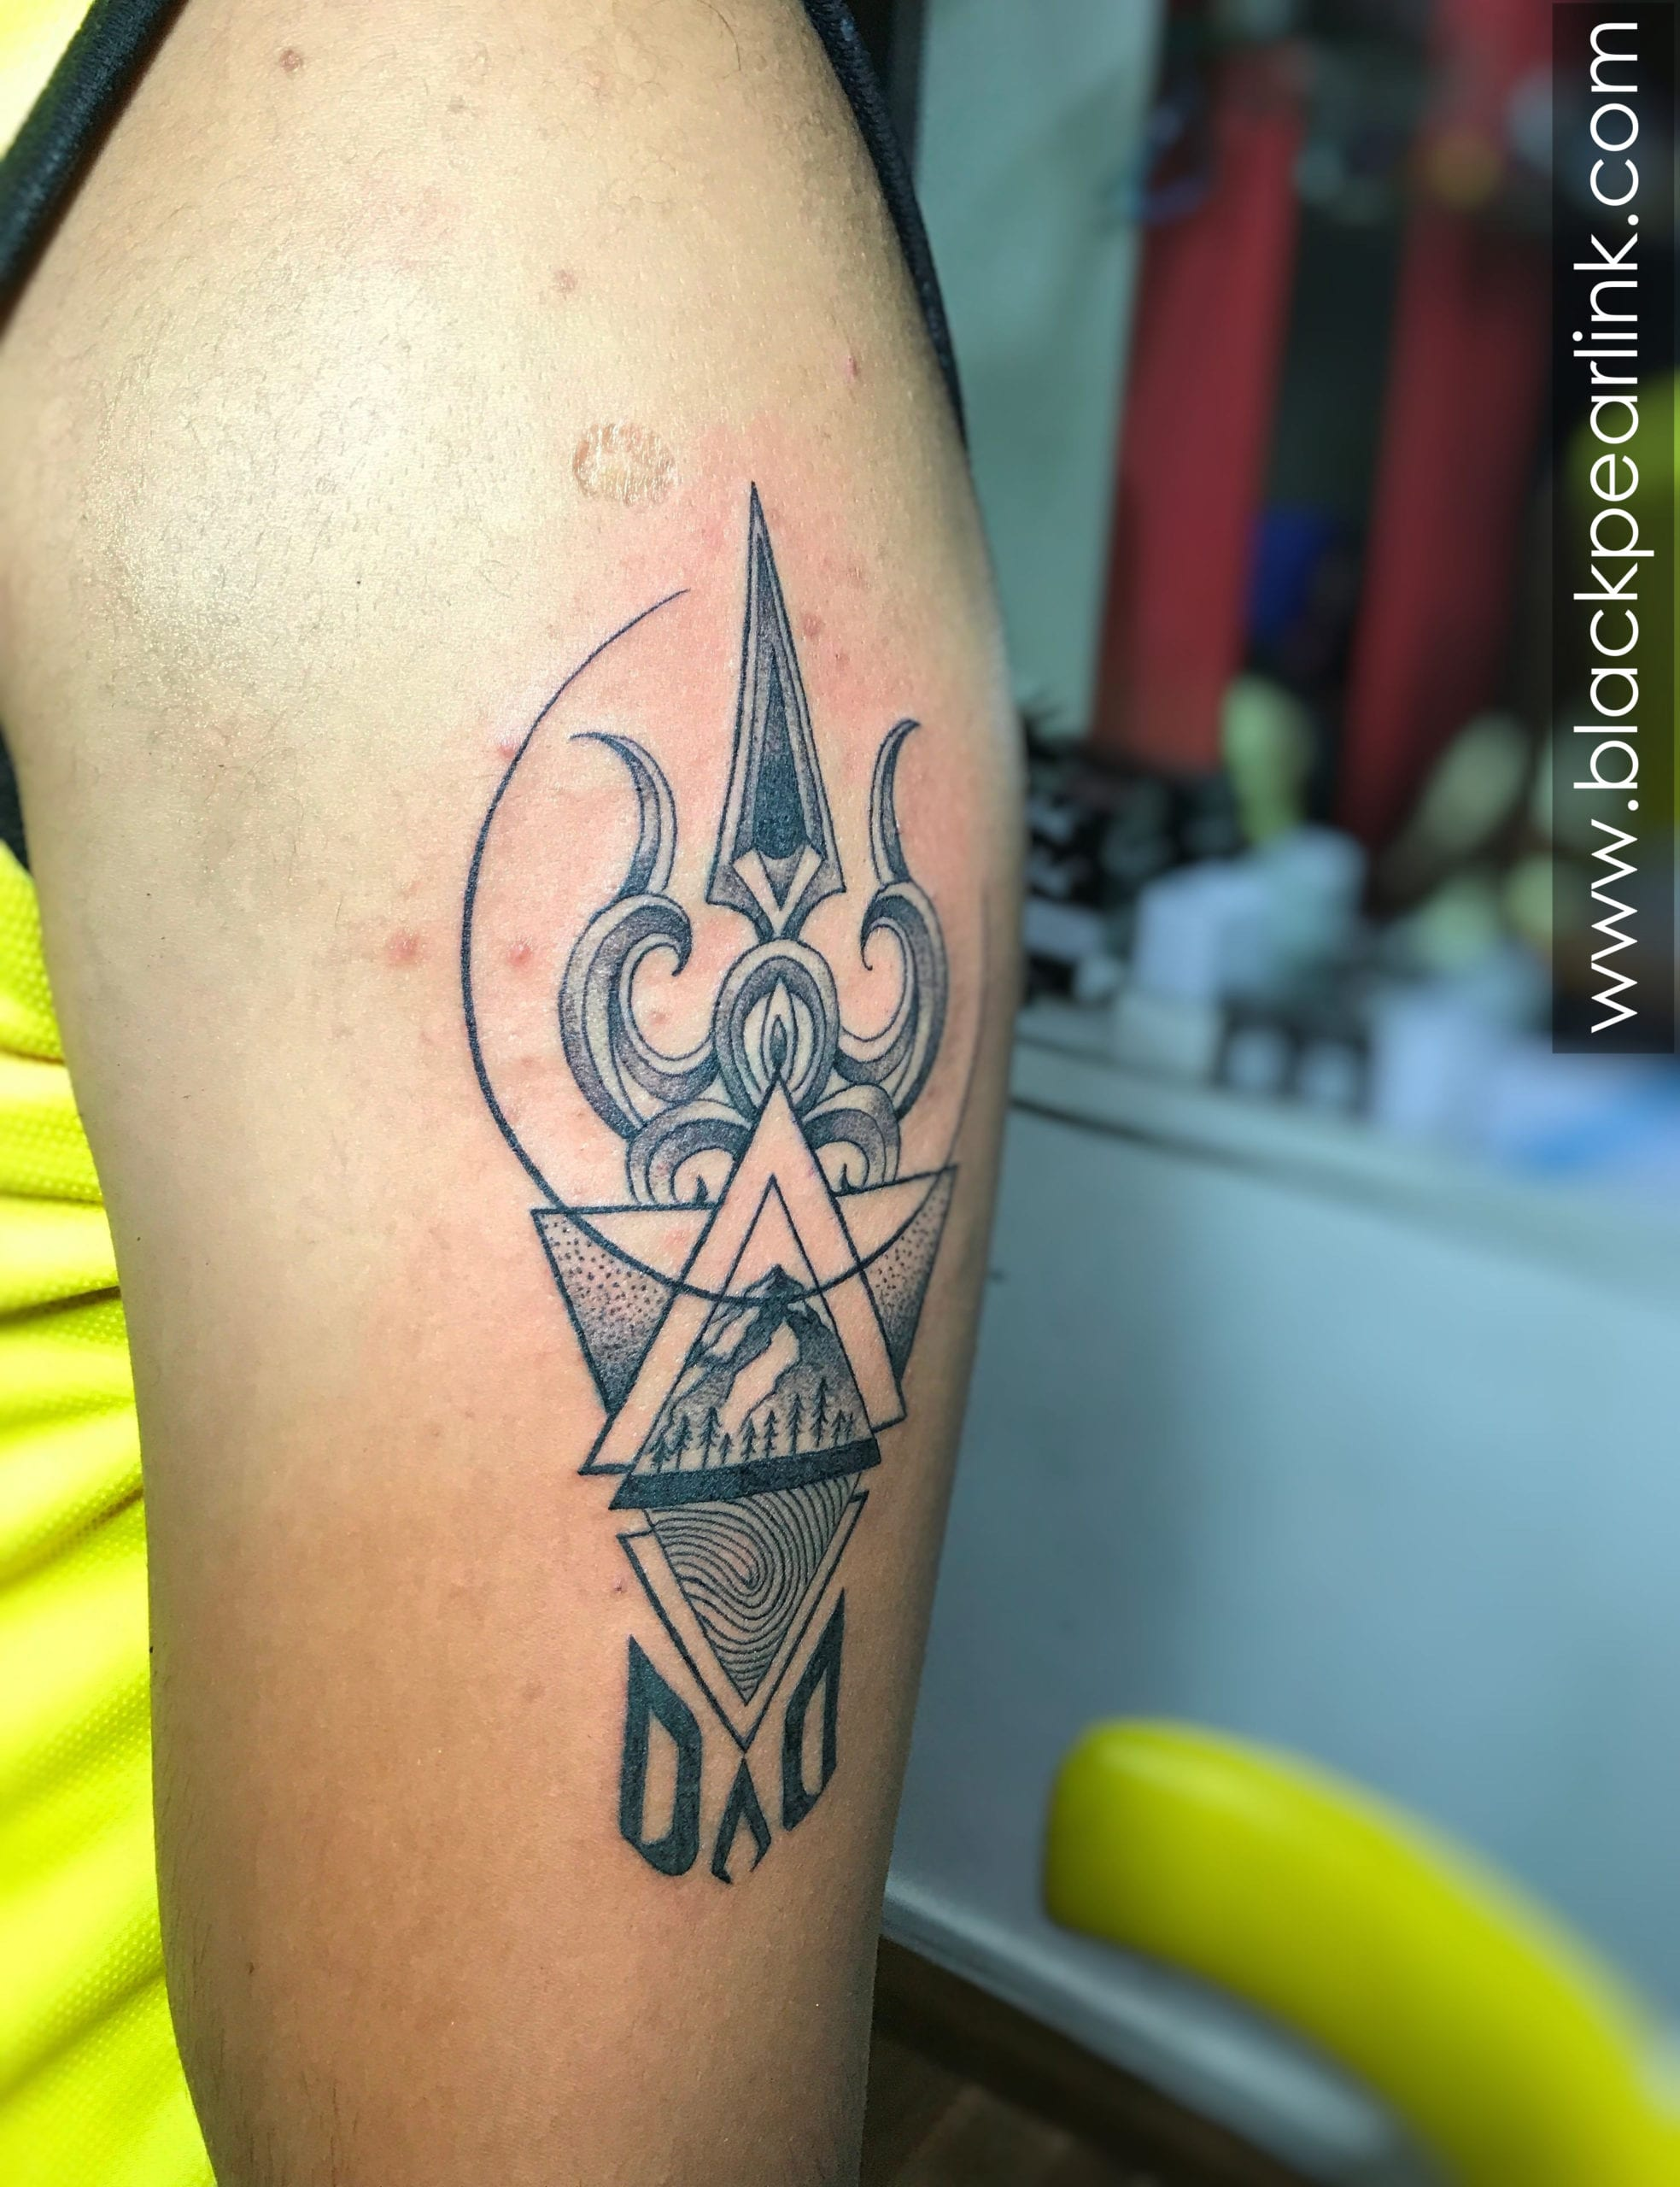 Concept Tattoo with Trishul and Mountains